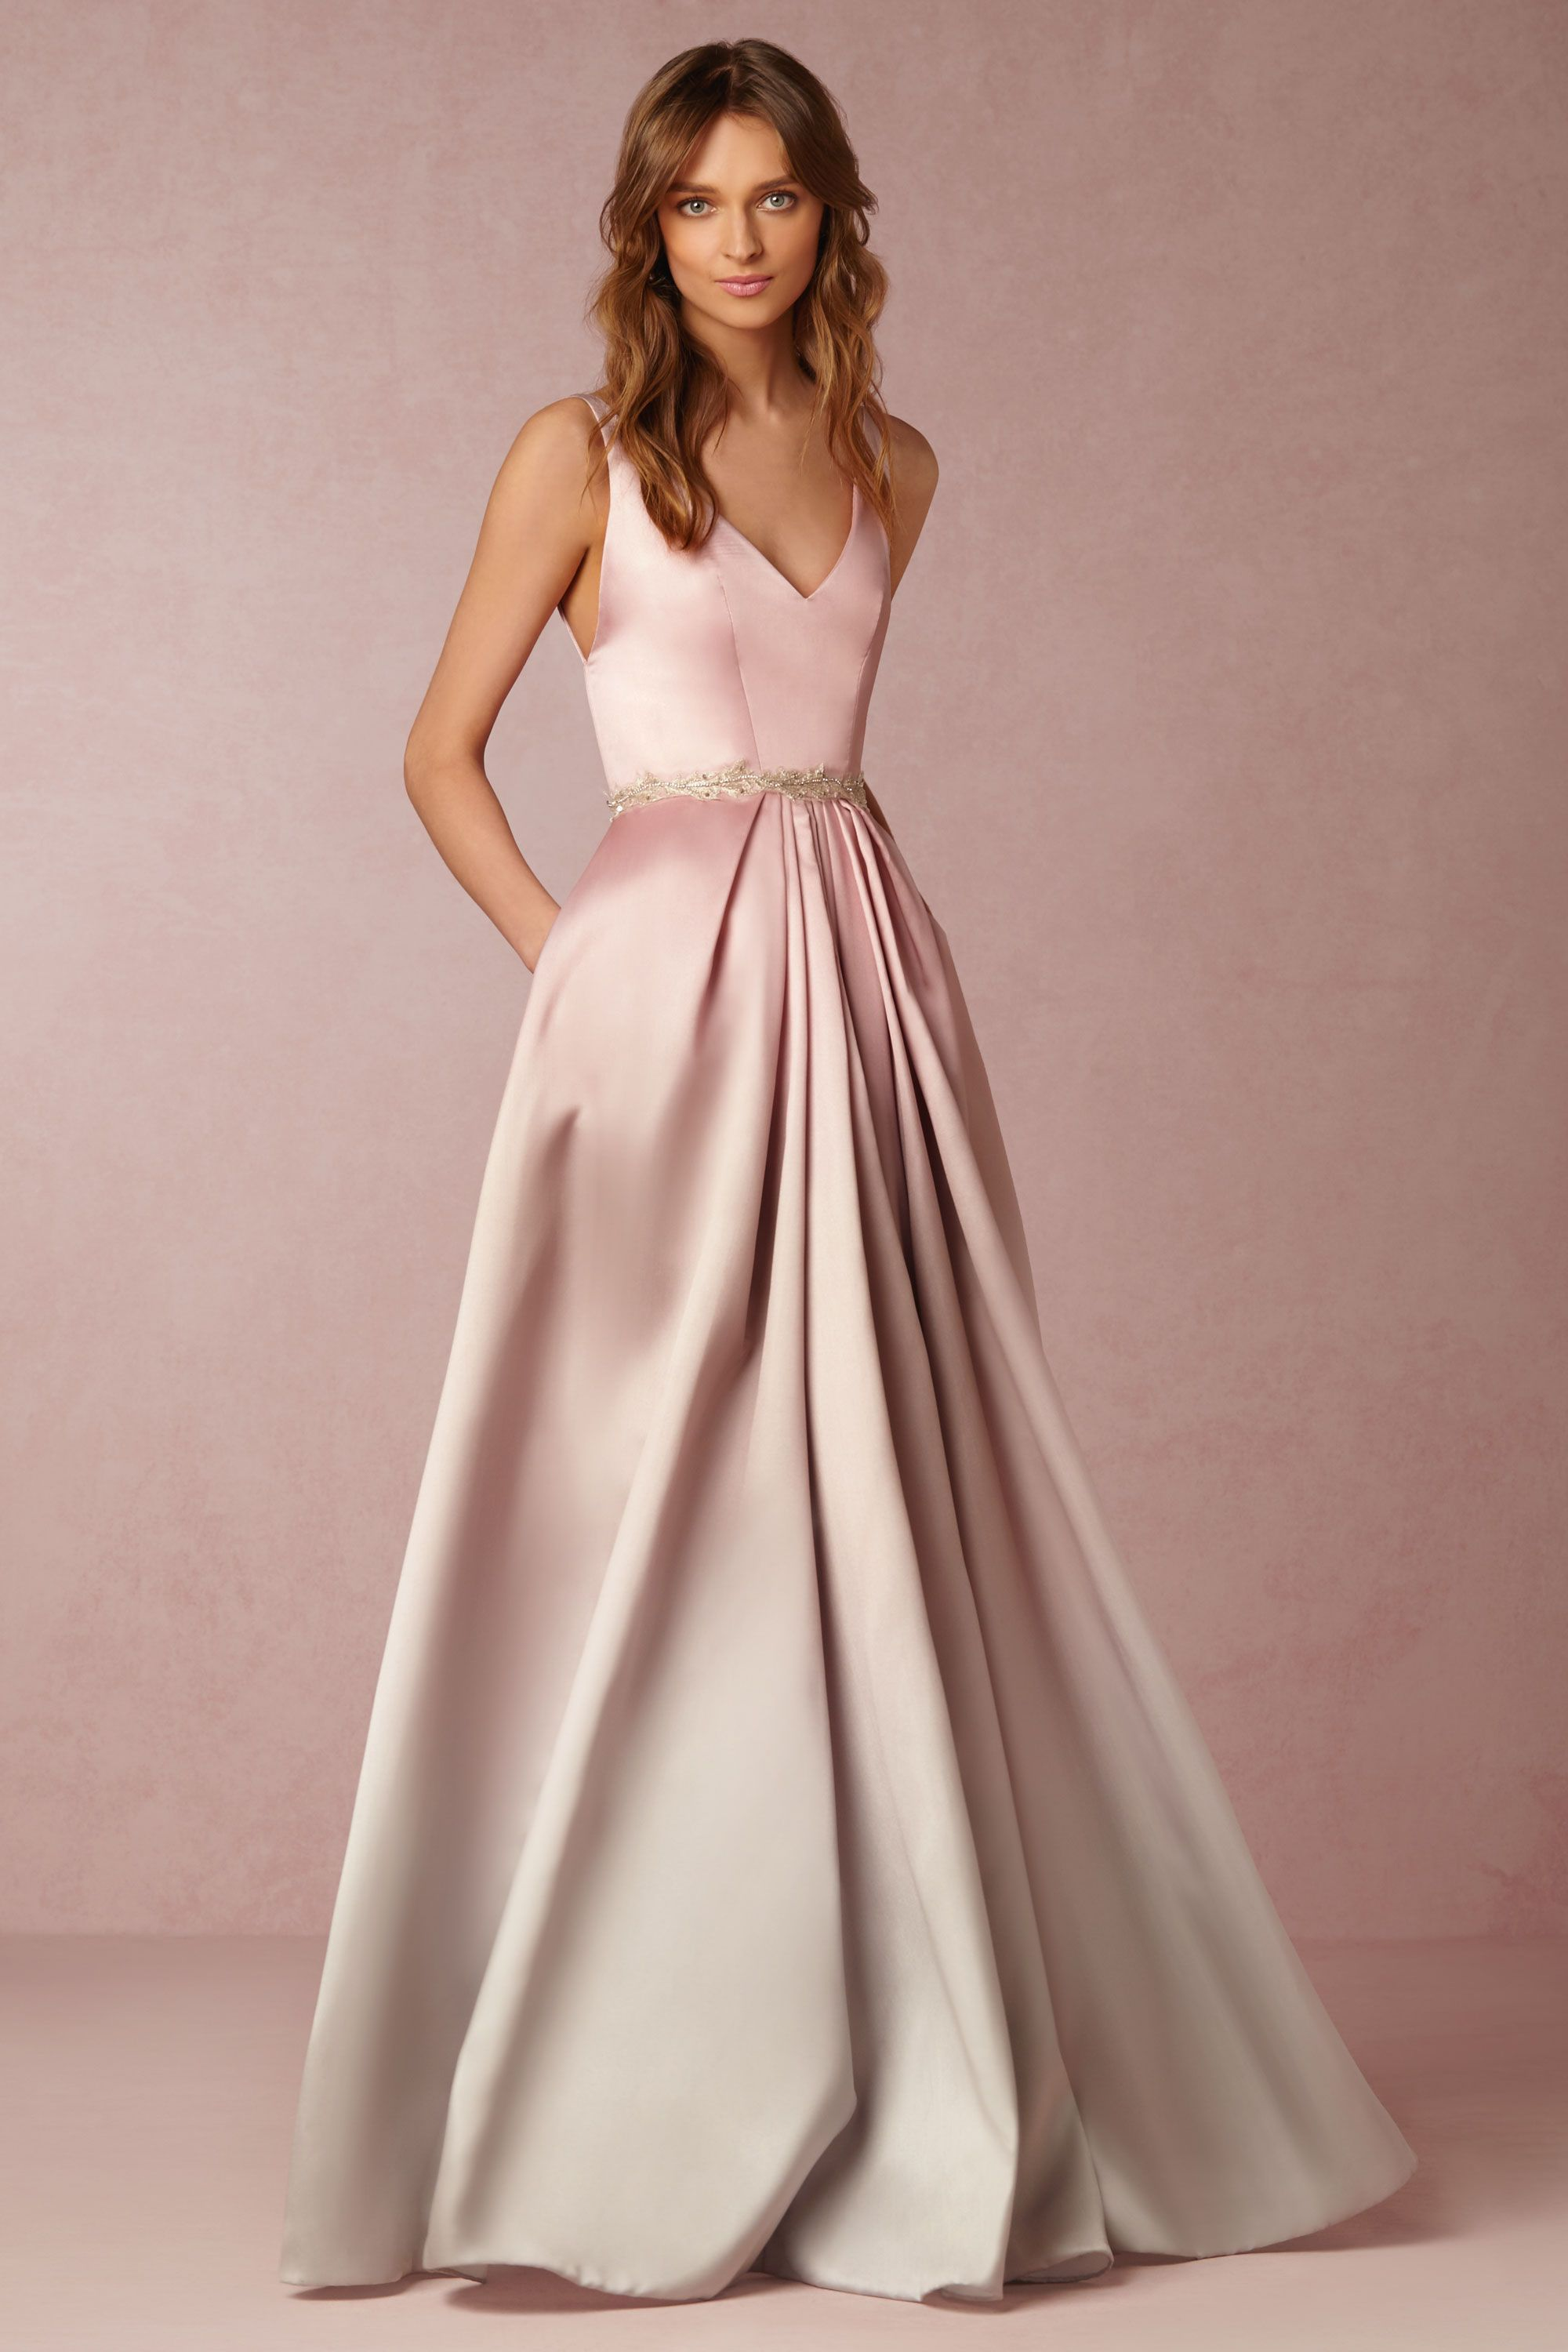 Monique Lhuillier – Lorraine Dress | Tu boda, Entrar y Boda